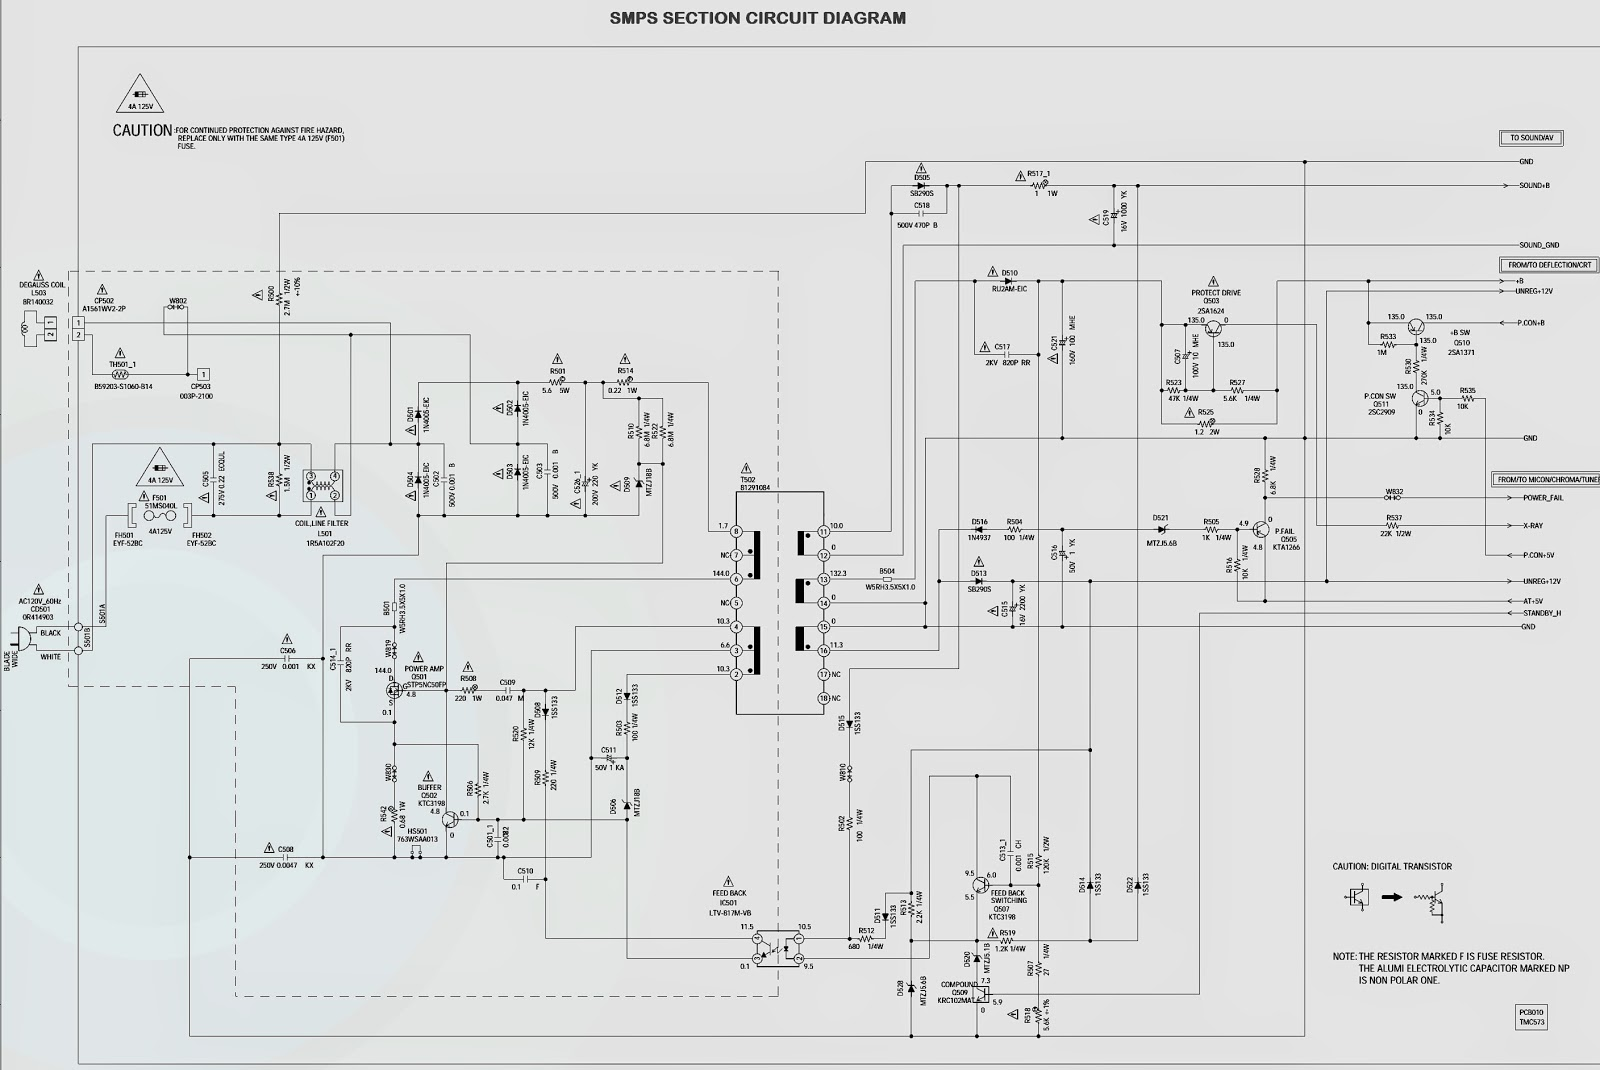 Panasonic Ct Z1423 Circuit Diagram Schematic Smps Horizontal L Filter Power Supply